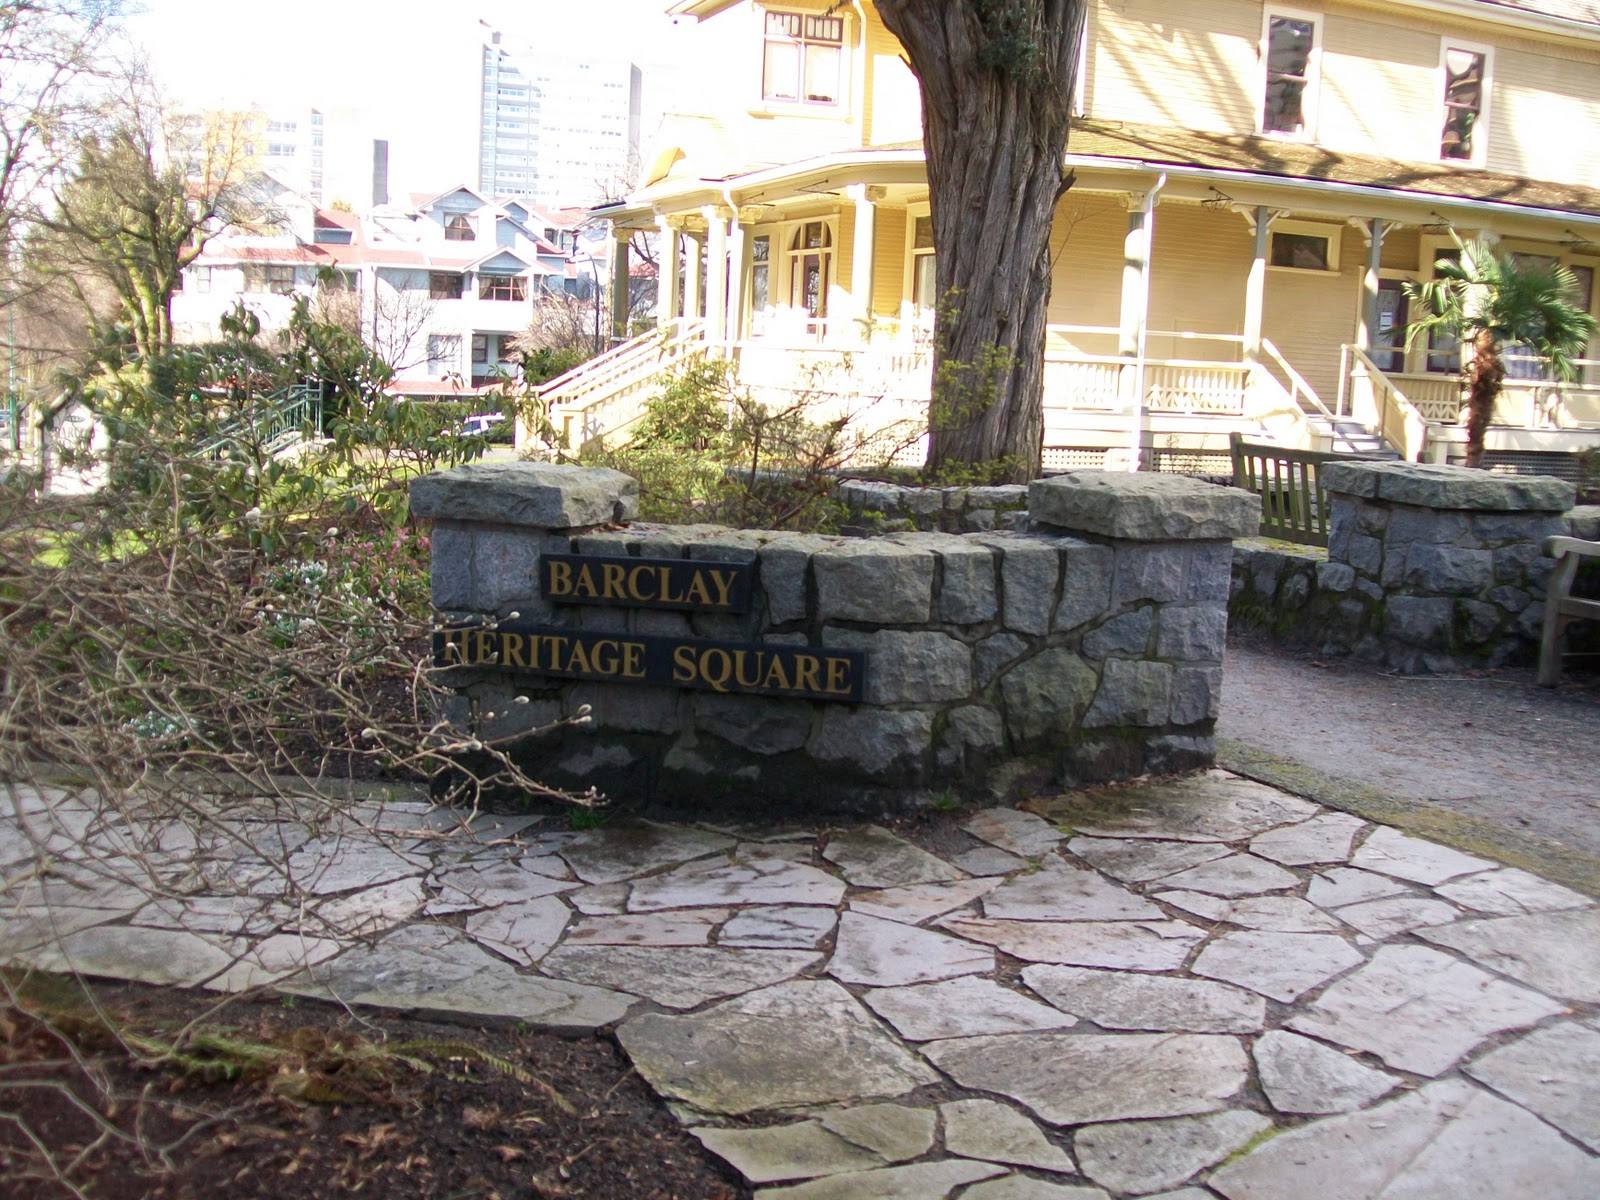 Barclay Heritage Square